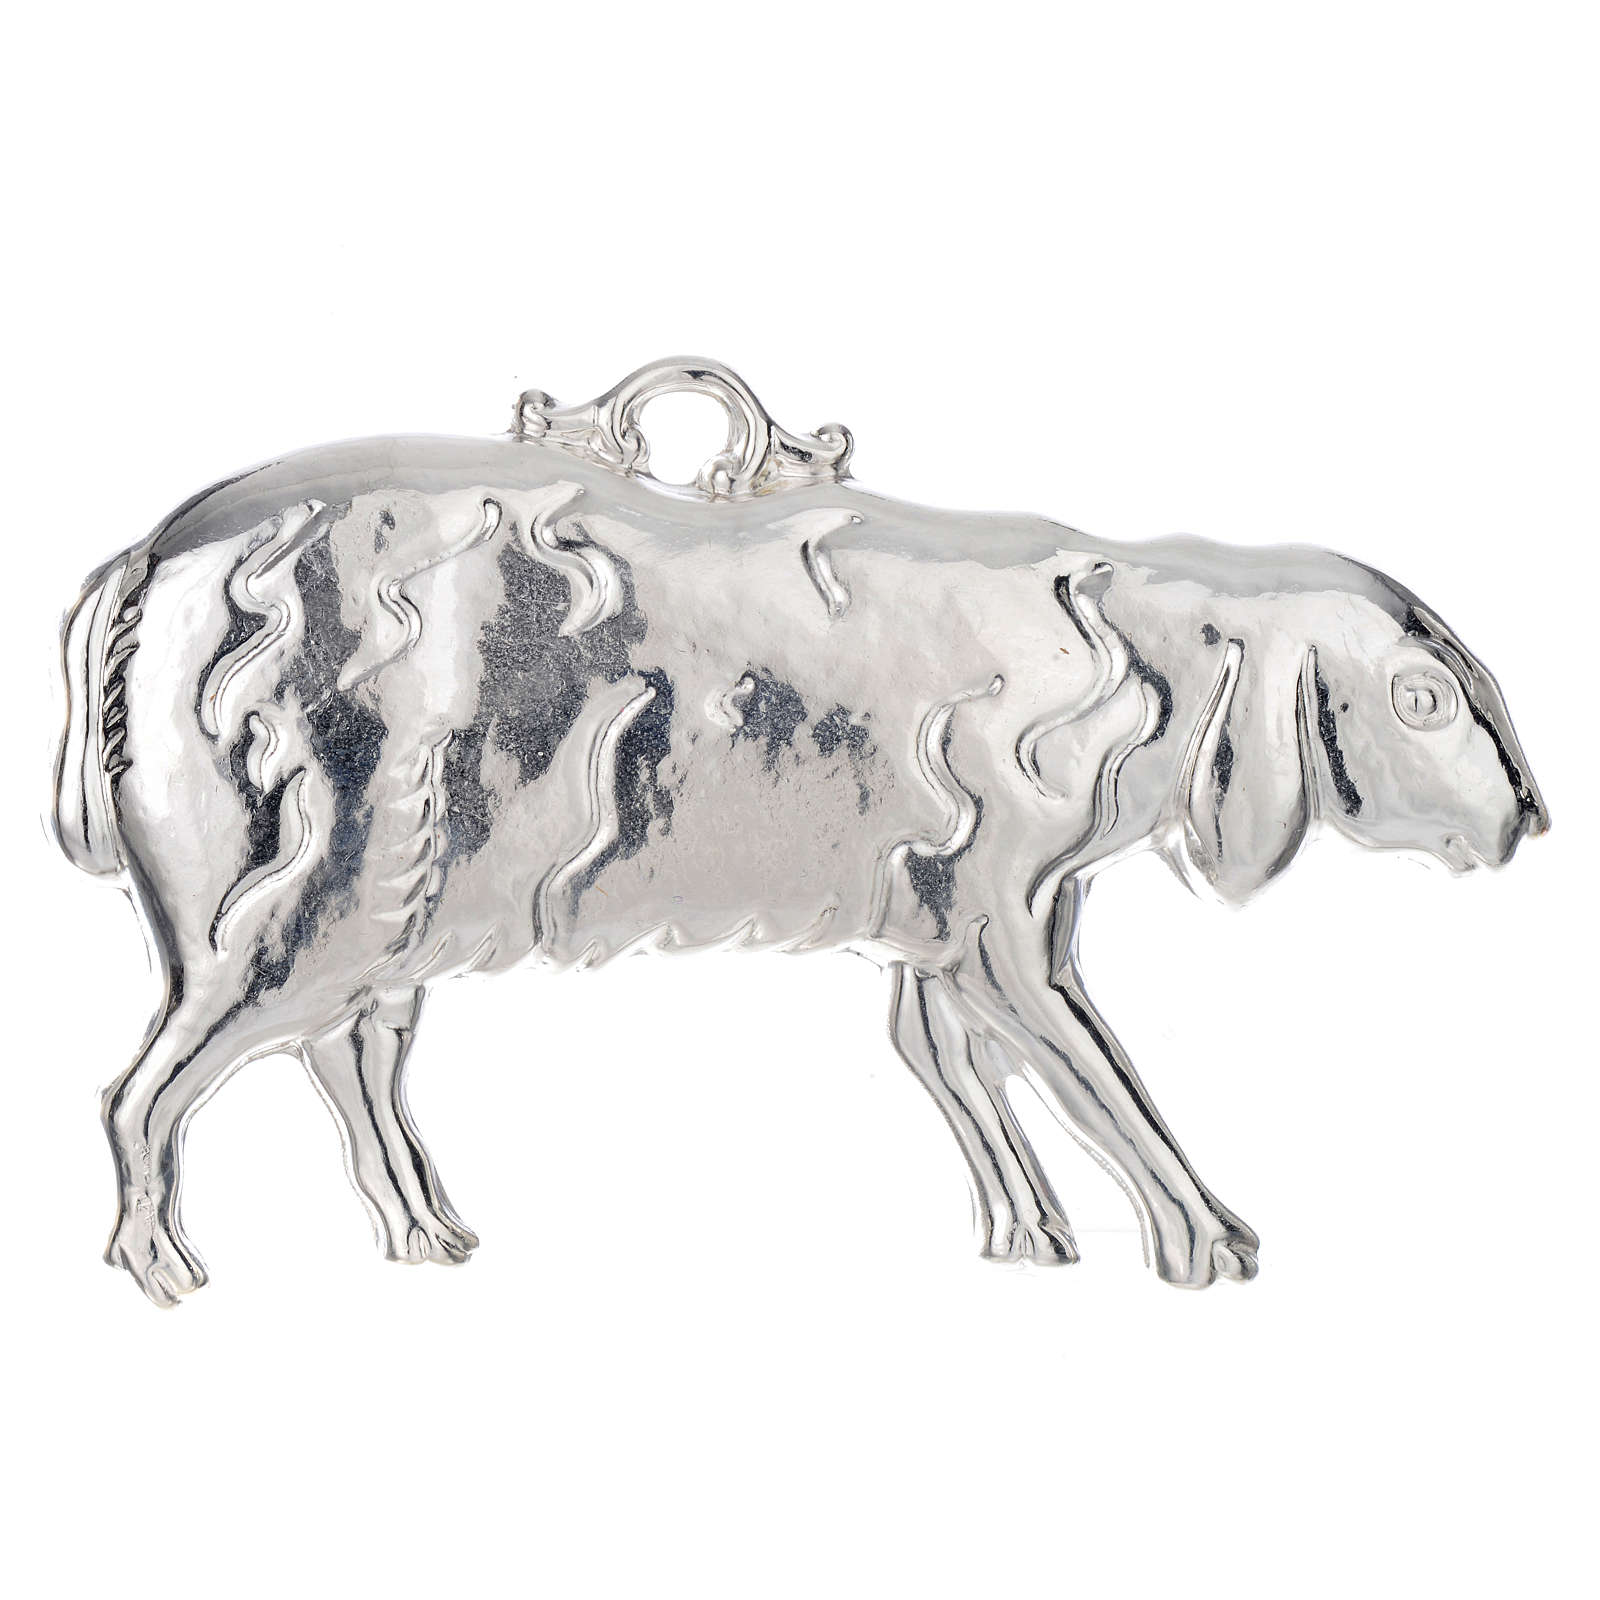 Ex-voto, sheep in sterling silver or metal, 11 x 6cm 3